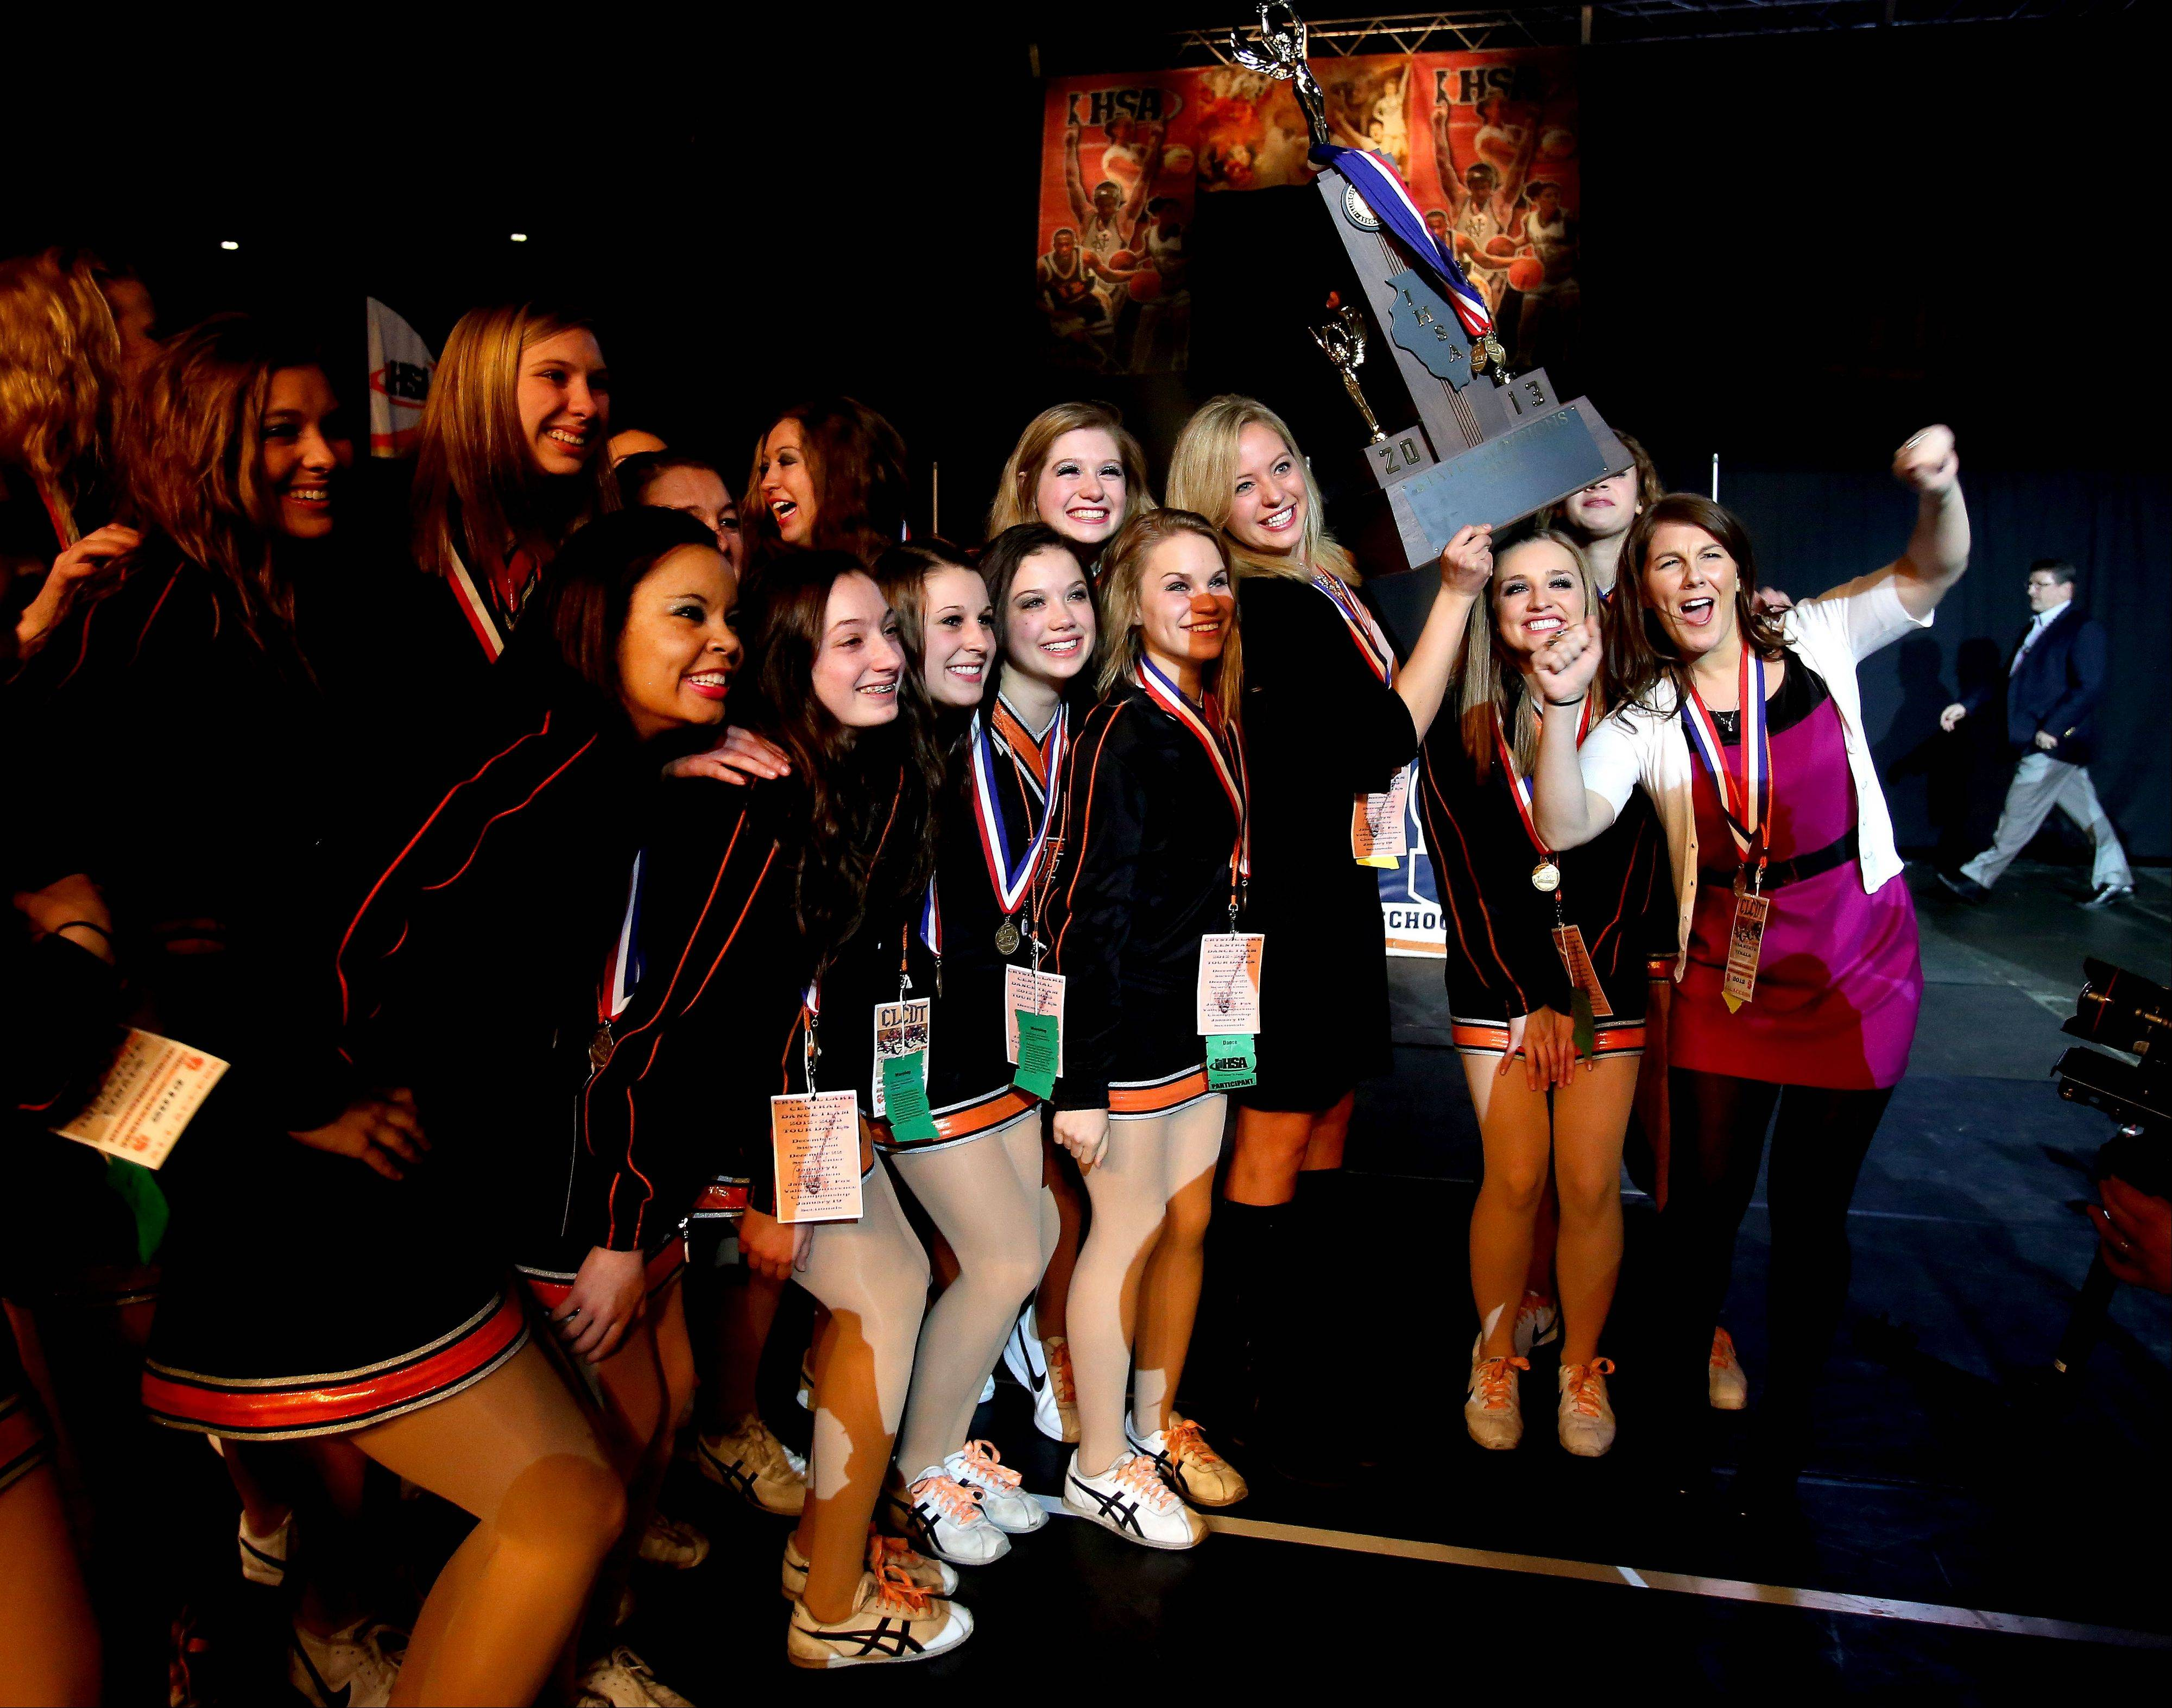 Crystal Lake Central coach Caroline Christensen holds the trophy as the team poses for a photo after their first place finish in the 2A division of the Competitive Dance State Finals on Saturday in Bloomington.